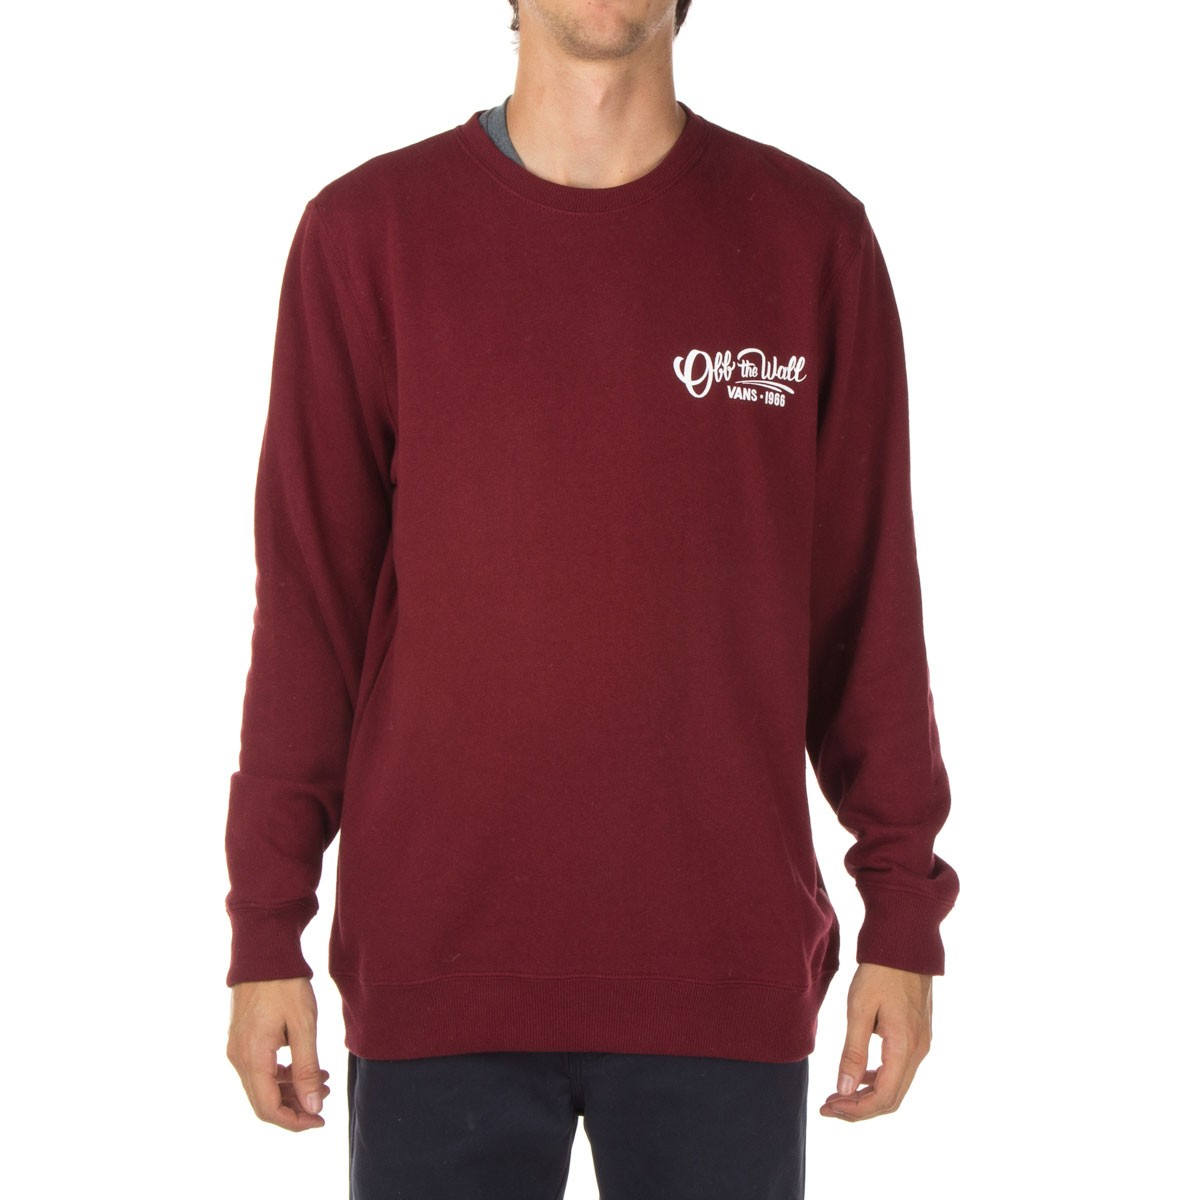 tee shirt vans bordeaux